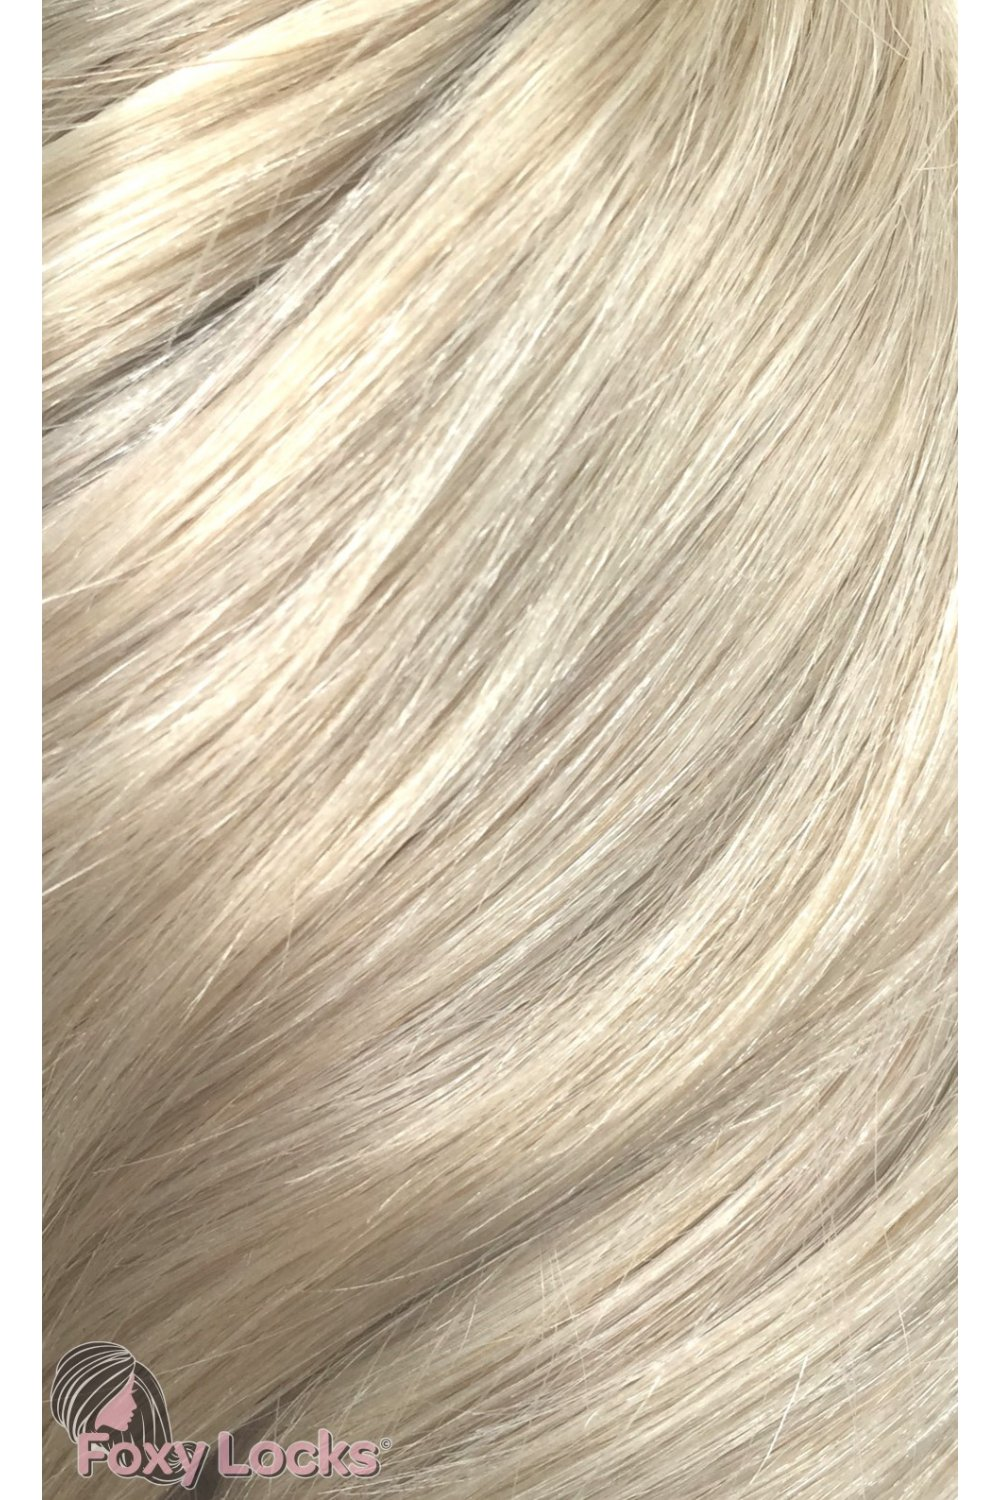 Platinum blonde 90 deluxe 20 clip in human hair extensions 165g platinum blonde deluxe 20 clip in human hair extensions pmusecretfo Images